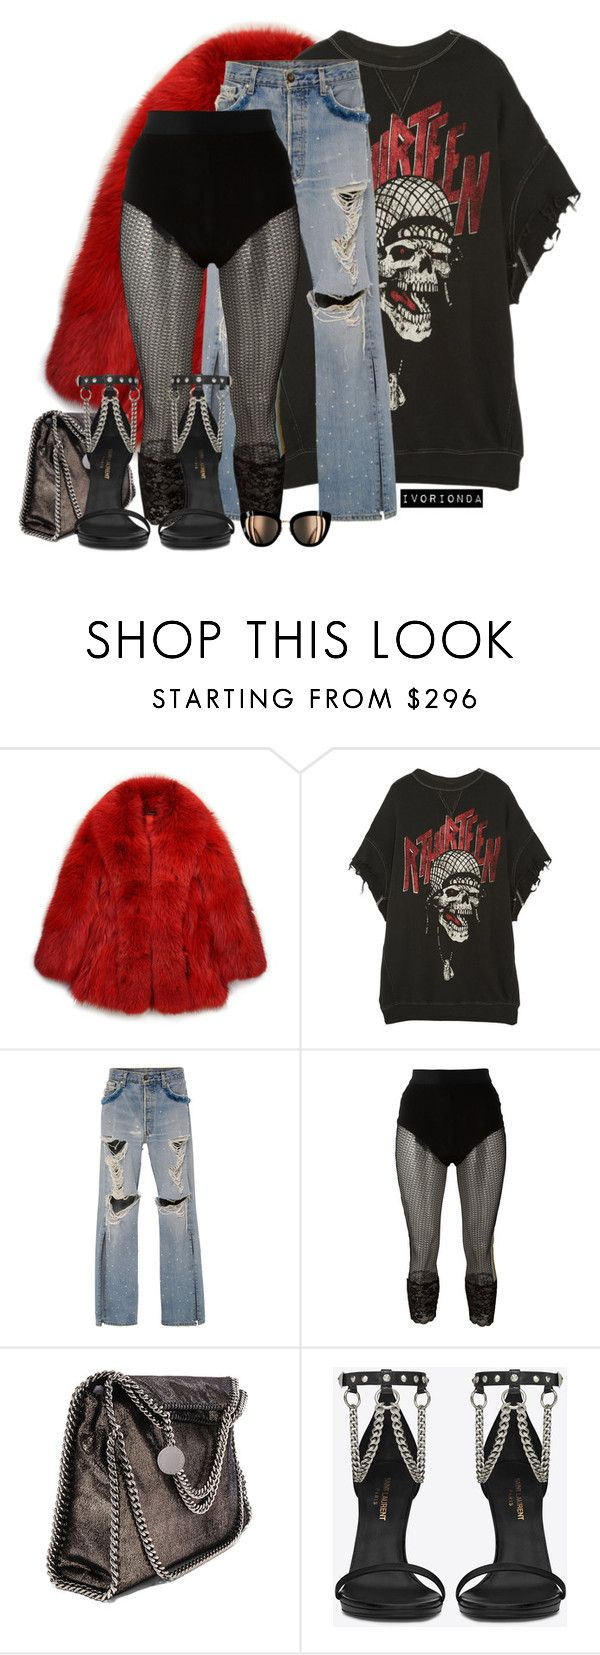 """""""io"""" by ivorionda ❤ liked on Polyvore featuring GUILTY BROTHERHOOD, R13, Jonathan Simkhai, Faith Connexion, STELLA McCARTNEY and Yves Saint Laurent"""